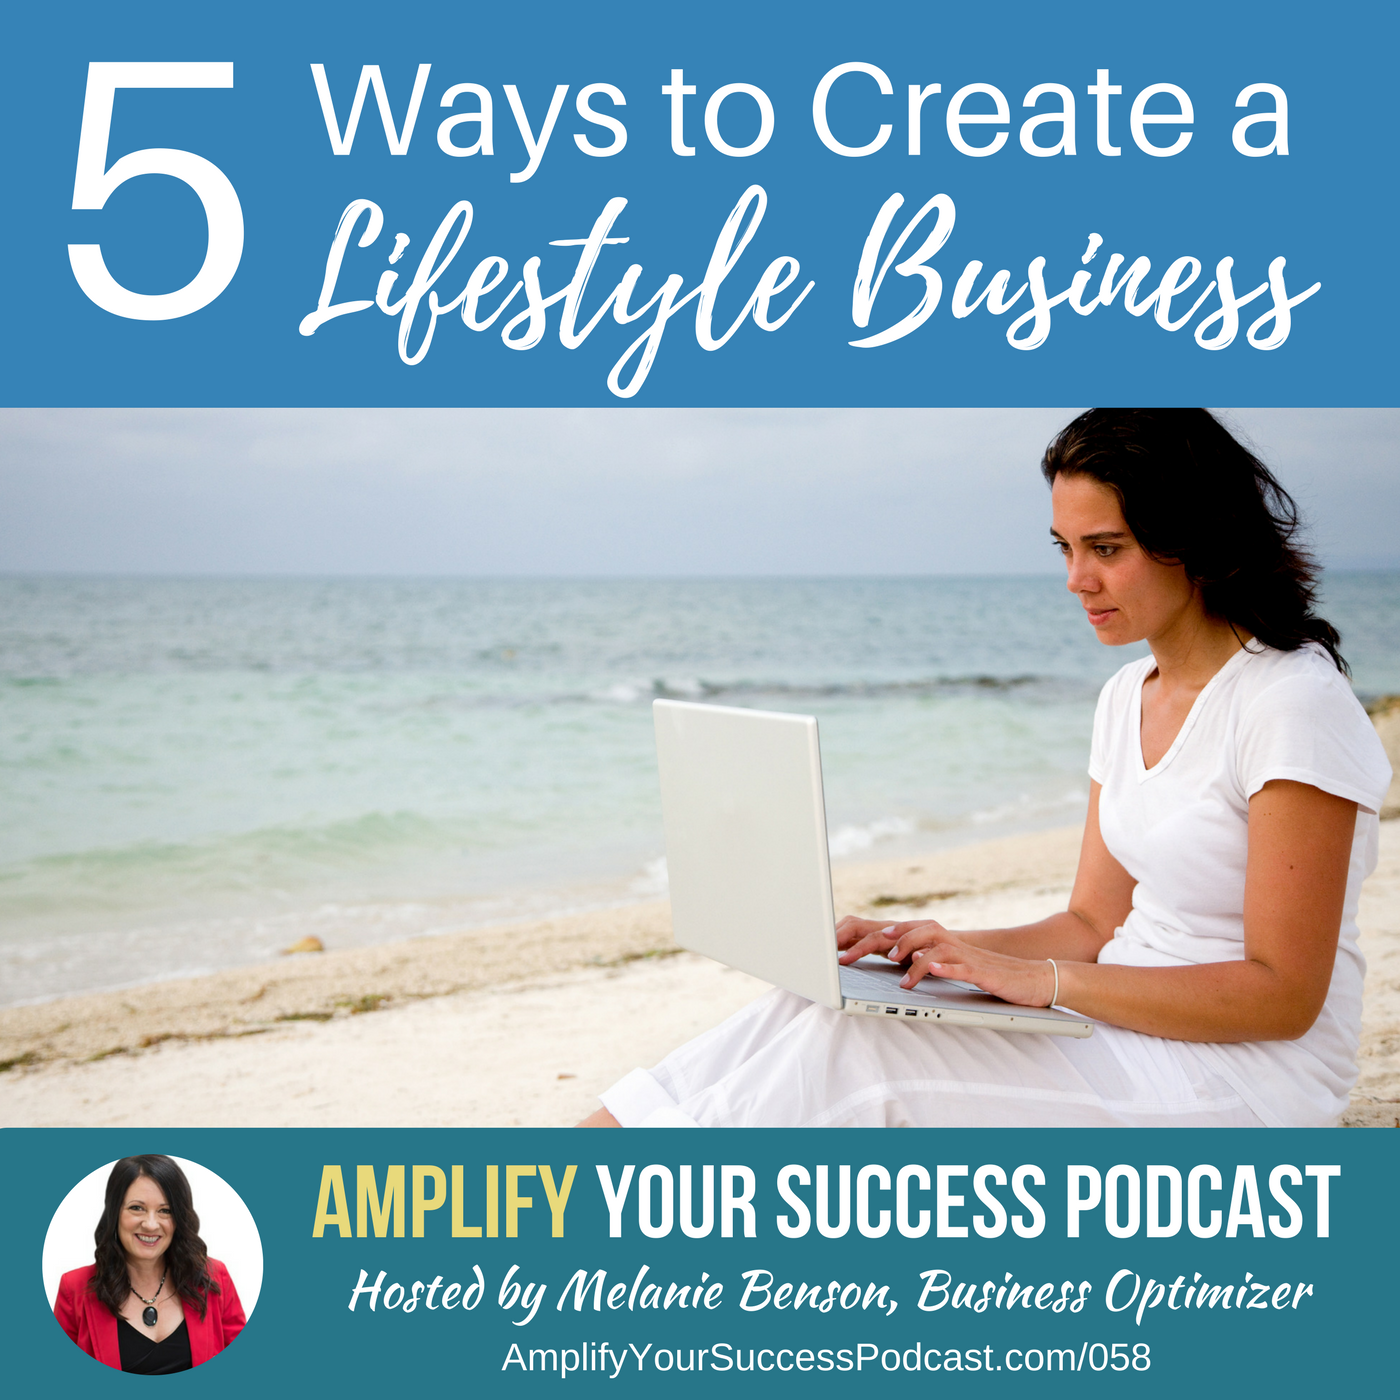 Five Ways to Create a Lifestyle Business You Love